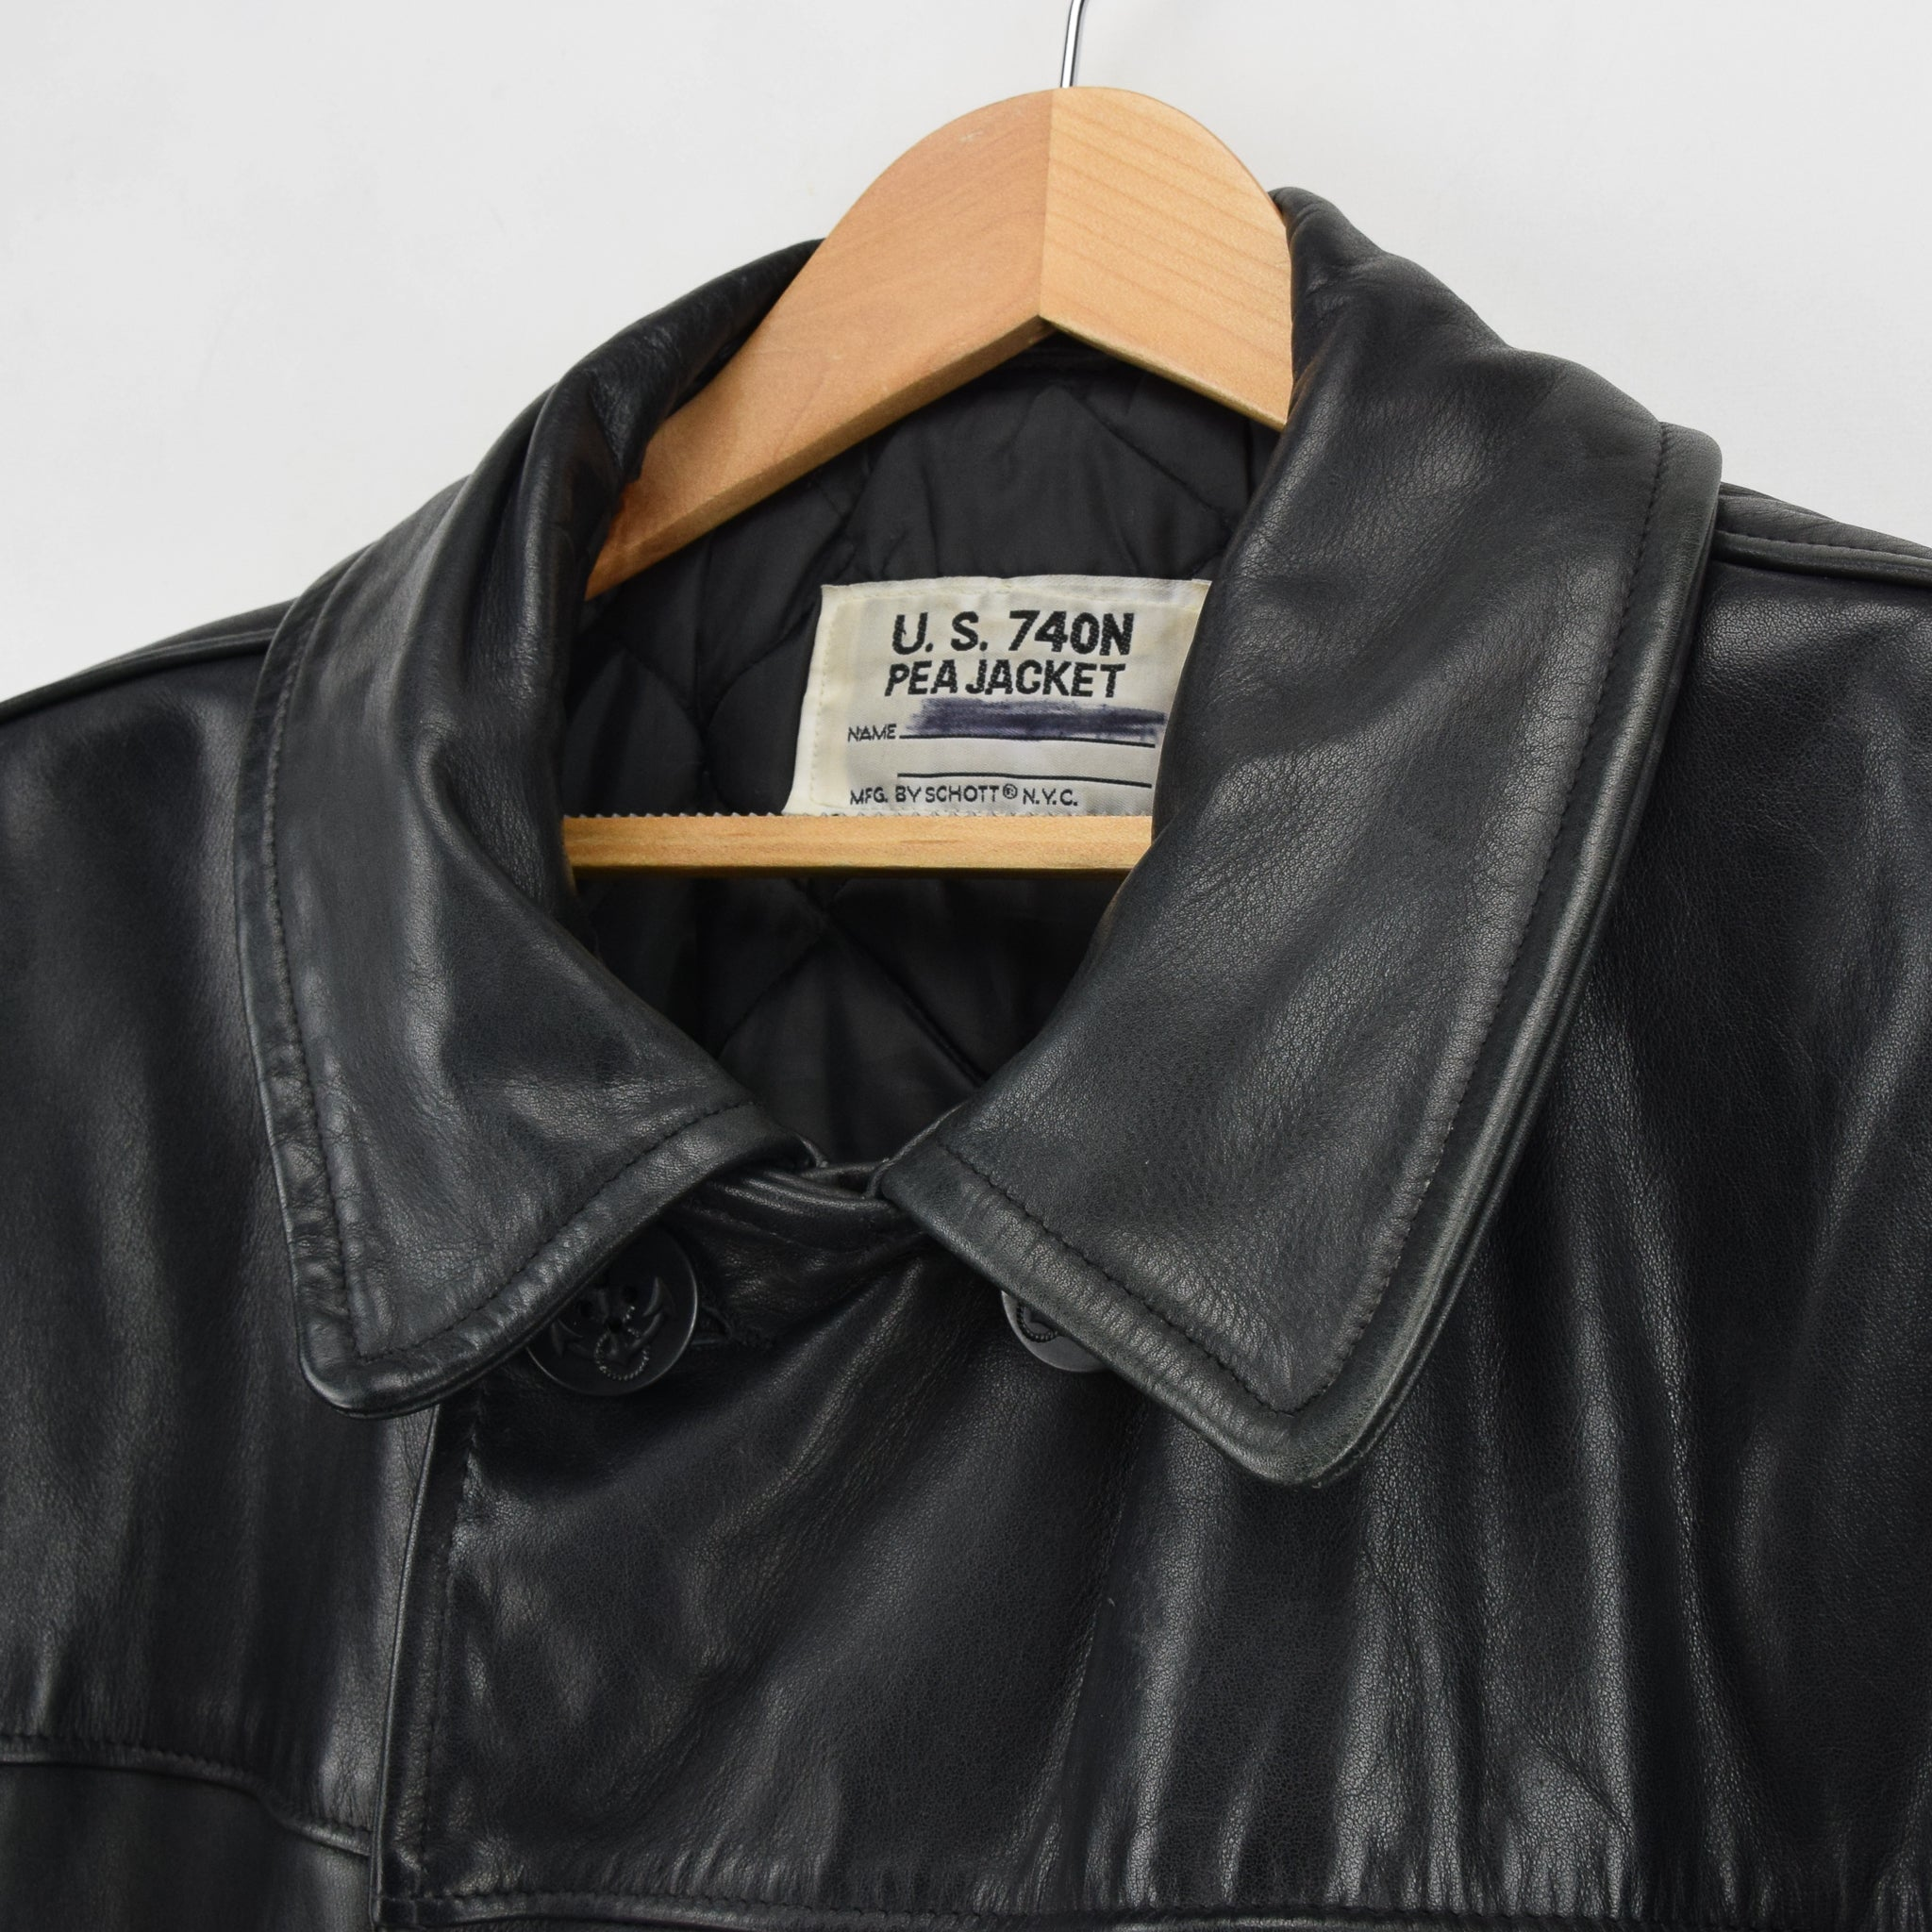 Vintage Schott NYC 740N Black Leather Pea Coat Reefer Jacket USA Made XXL / XXXL collar